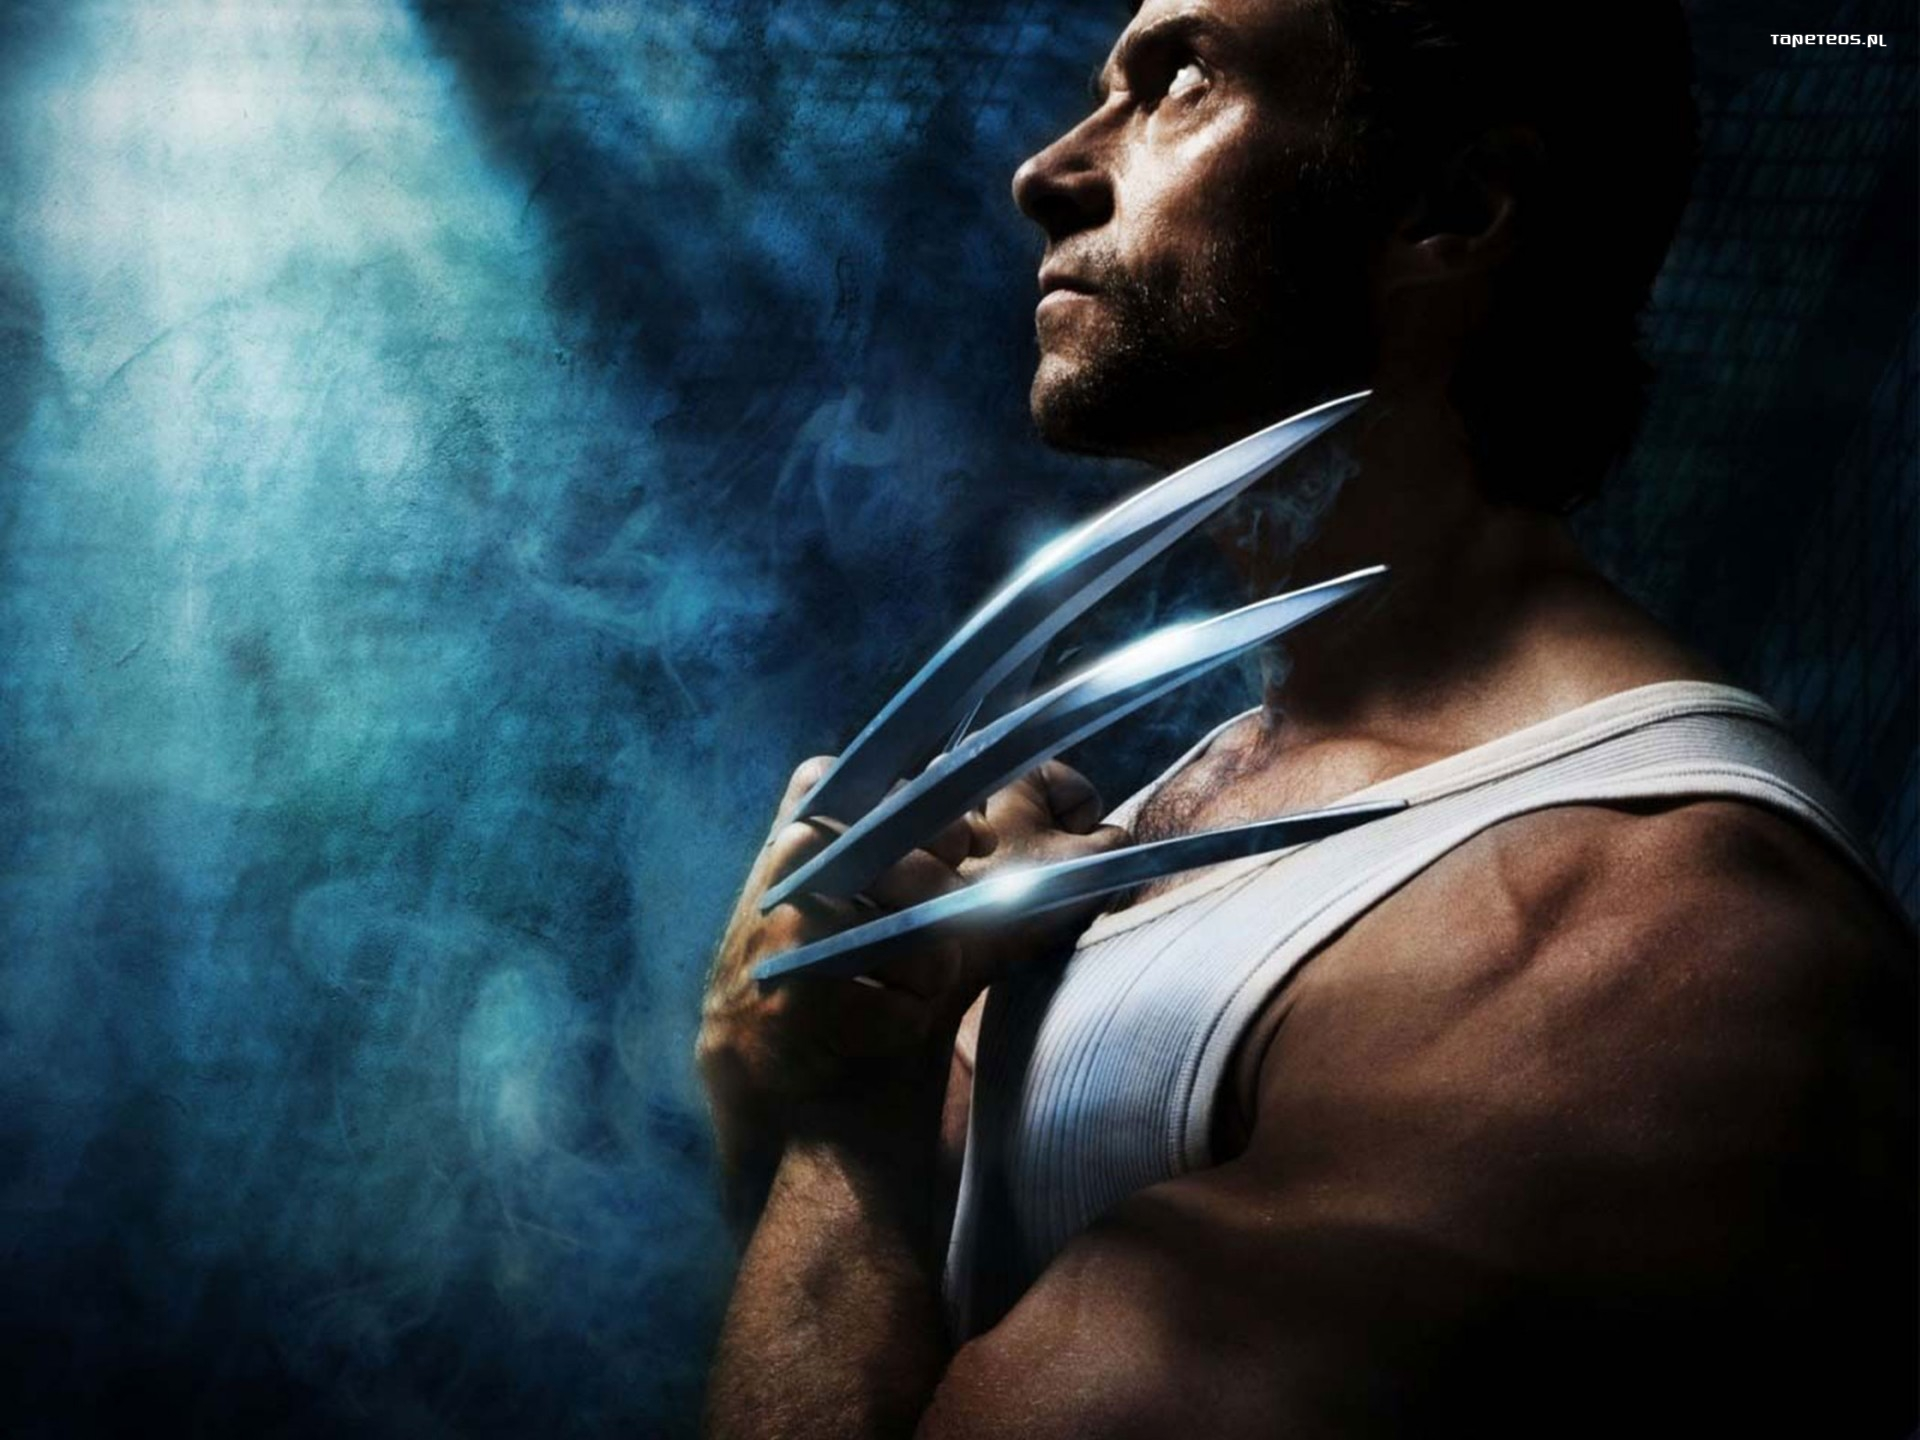 X-Men Days of Future Past 010 Logan - Wolverine